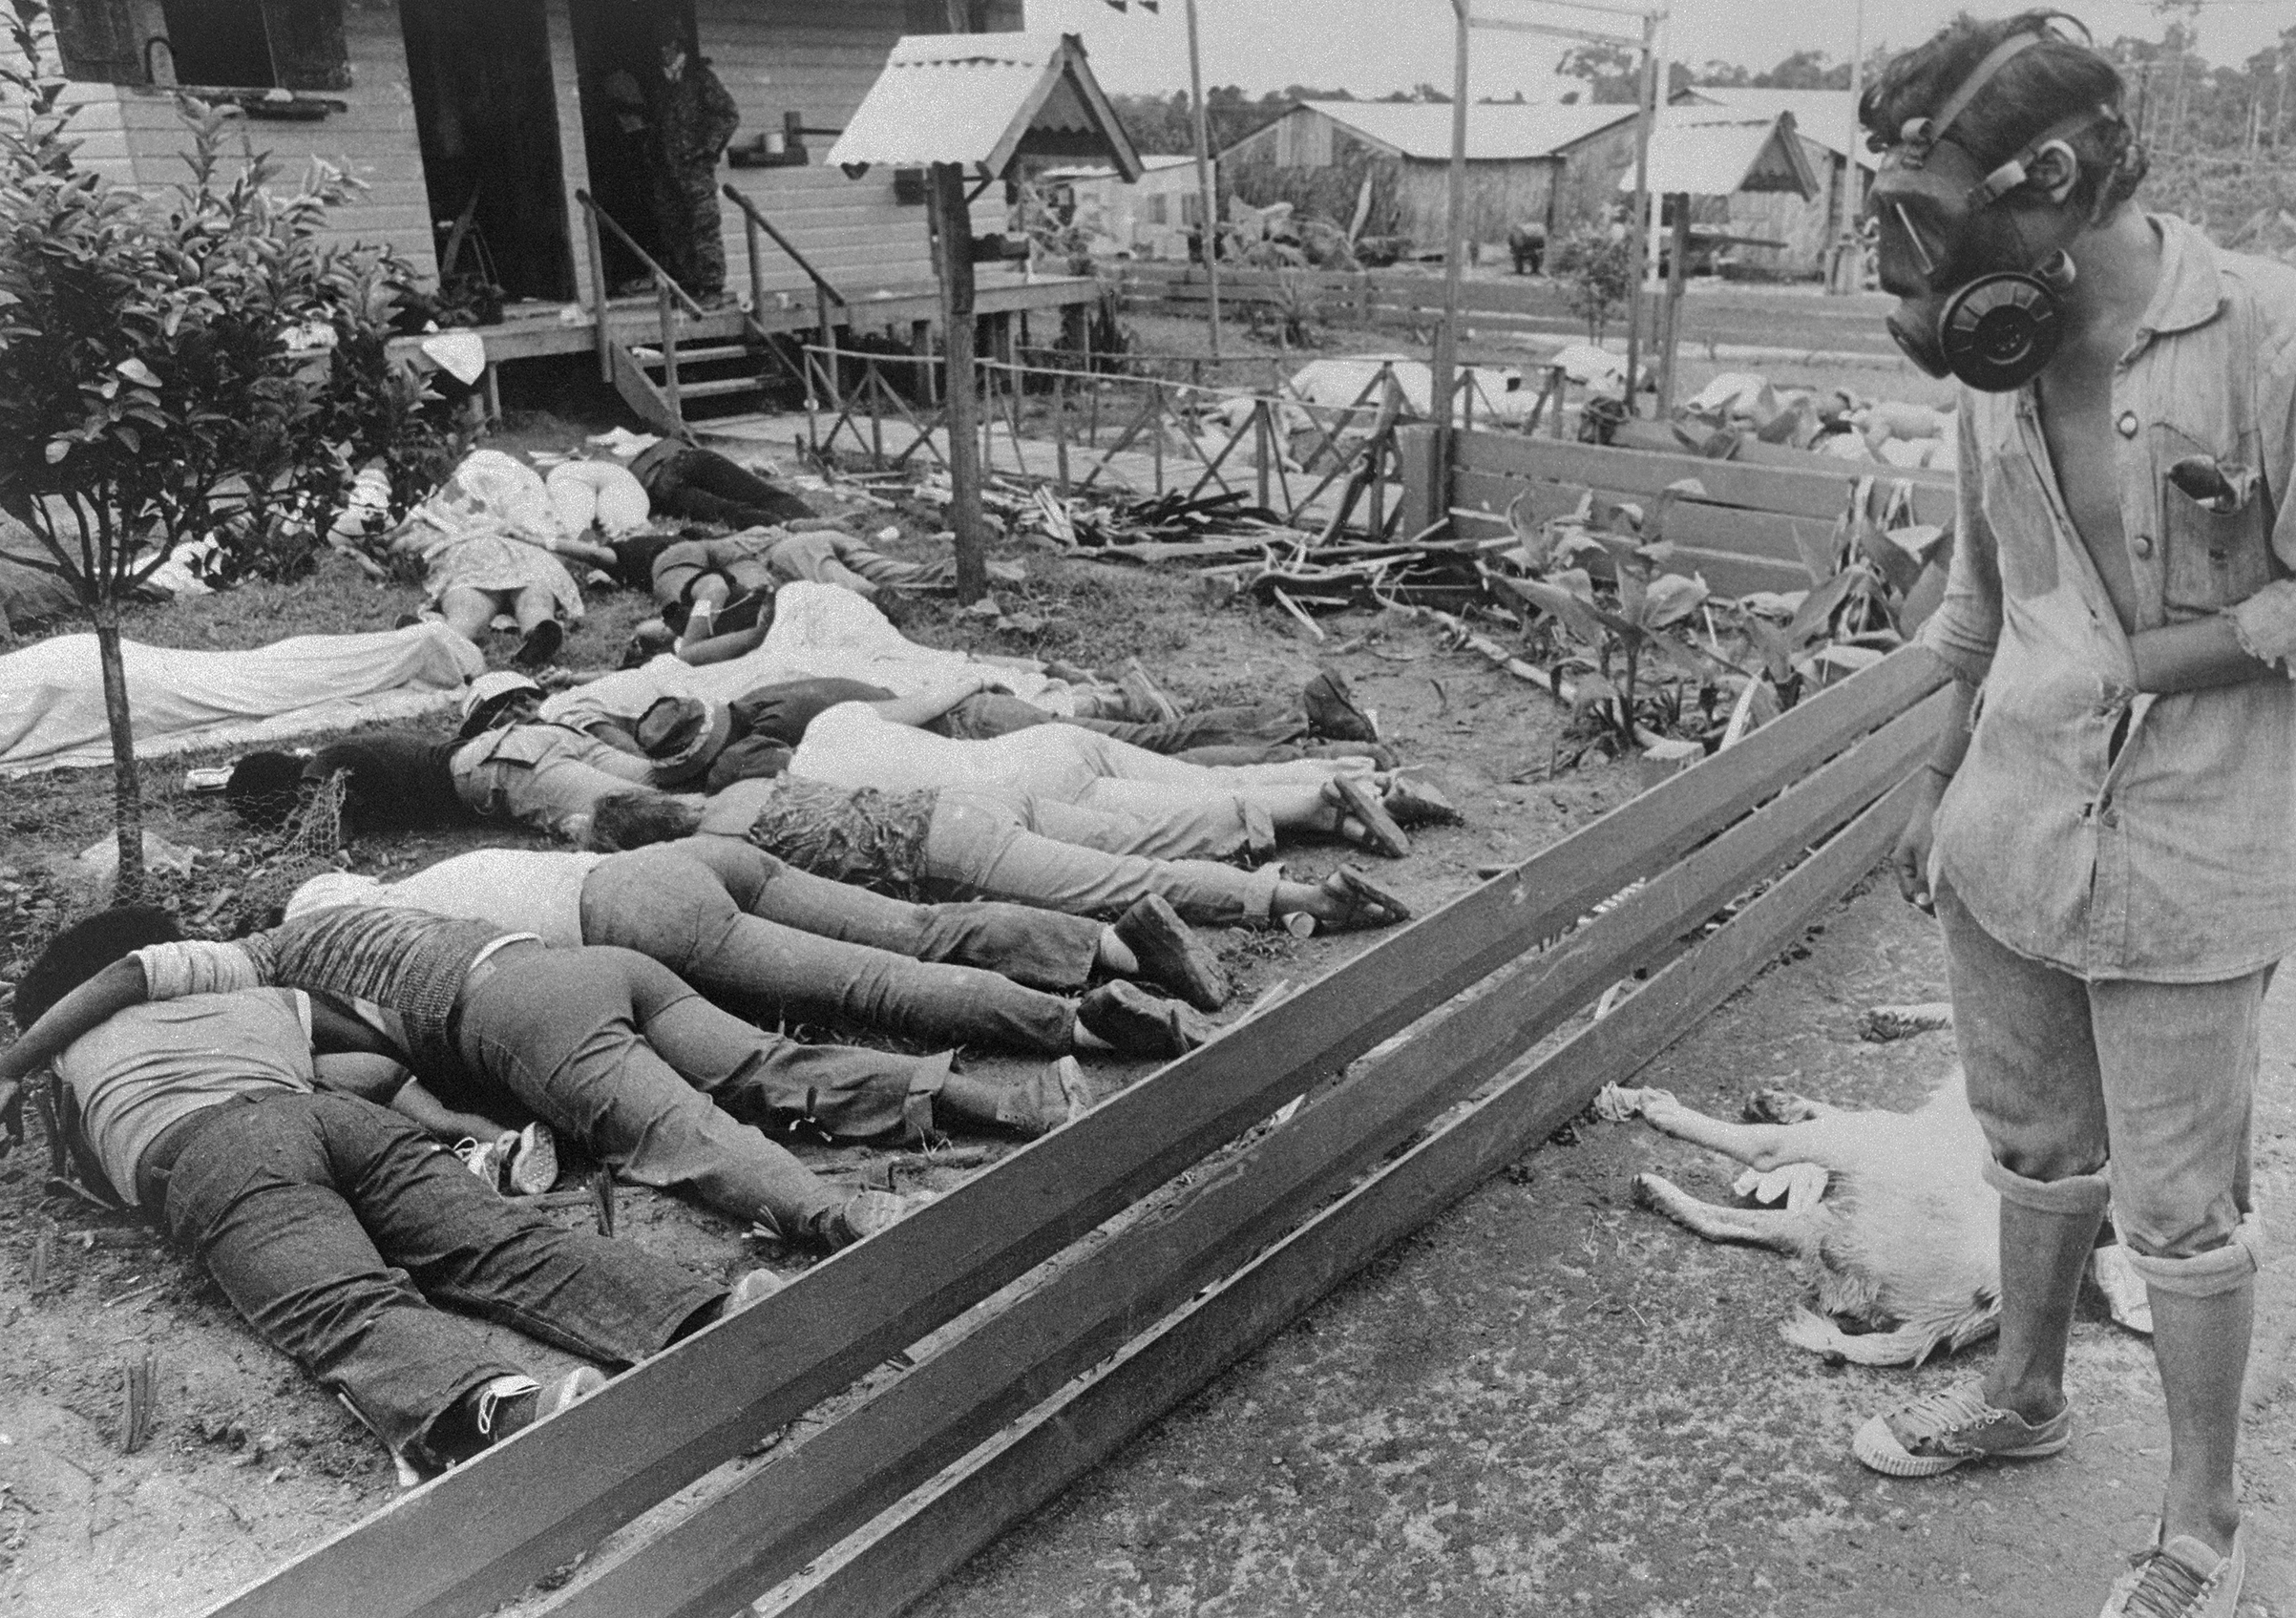 A member of the team sent to Jonestown by the Guyana Government surveys some of the hundreds of bodies of People's Temple followers who died following the murder of Congressman Leo Ryan and newsman on November 18. Authorities said that five, including cult leader Jim Jones, died of gunshot wounds. Most, however, died of cyanide poisoning.